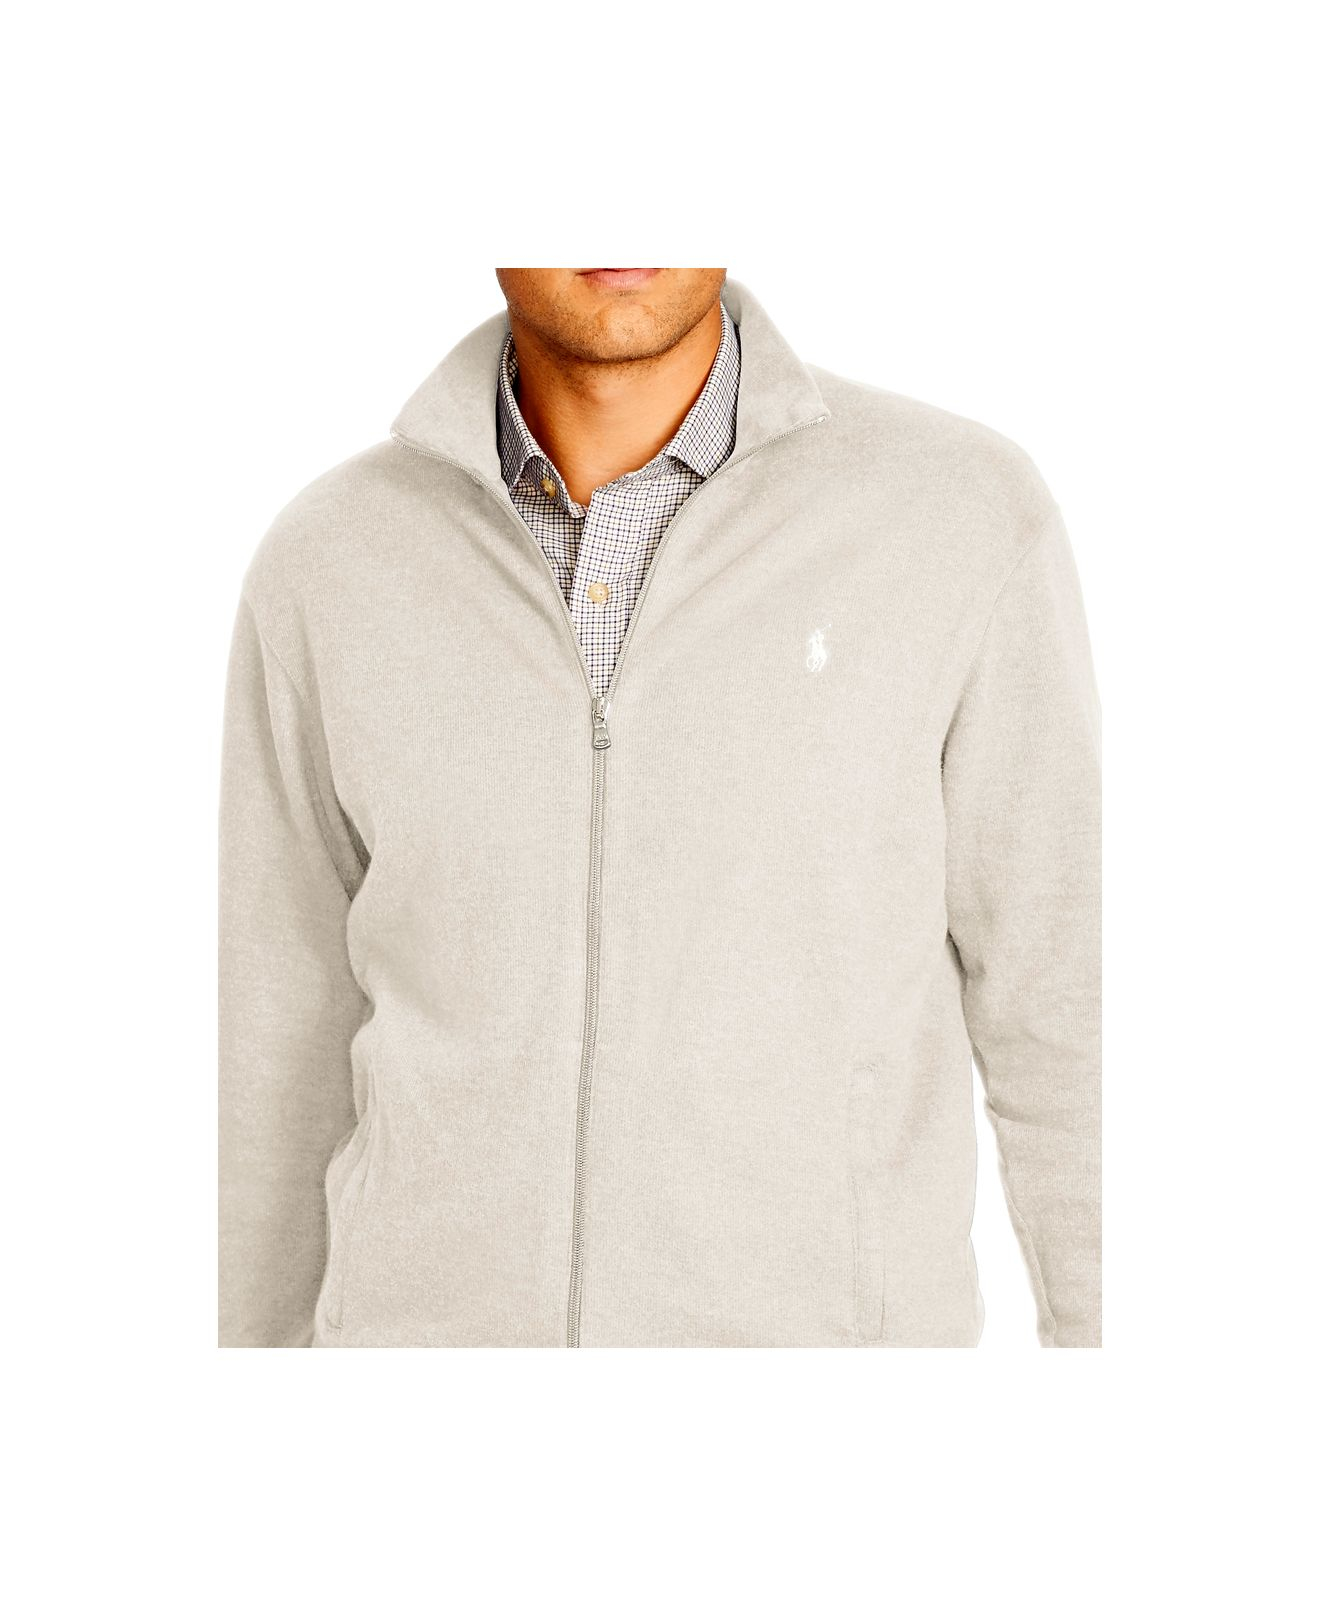 Polo ralph lauren Big \u0026amp; Tall French-rib Full-zip Jacket in Beige for Men (Chic Cream) | Lyst